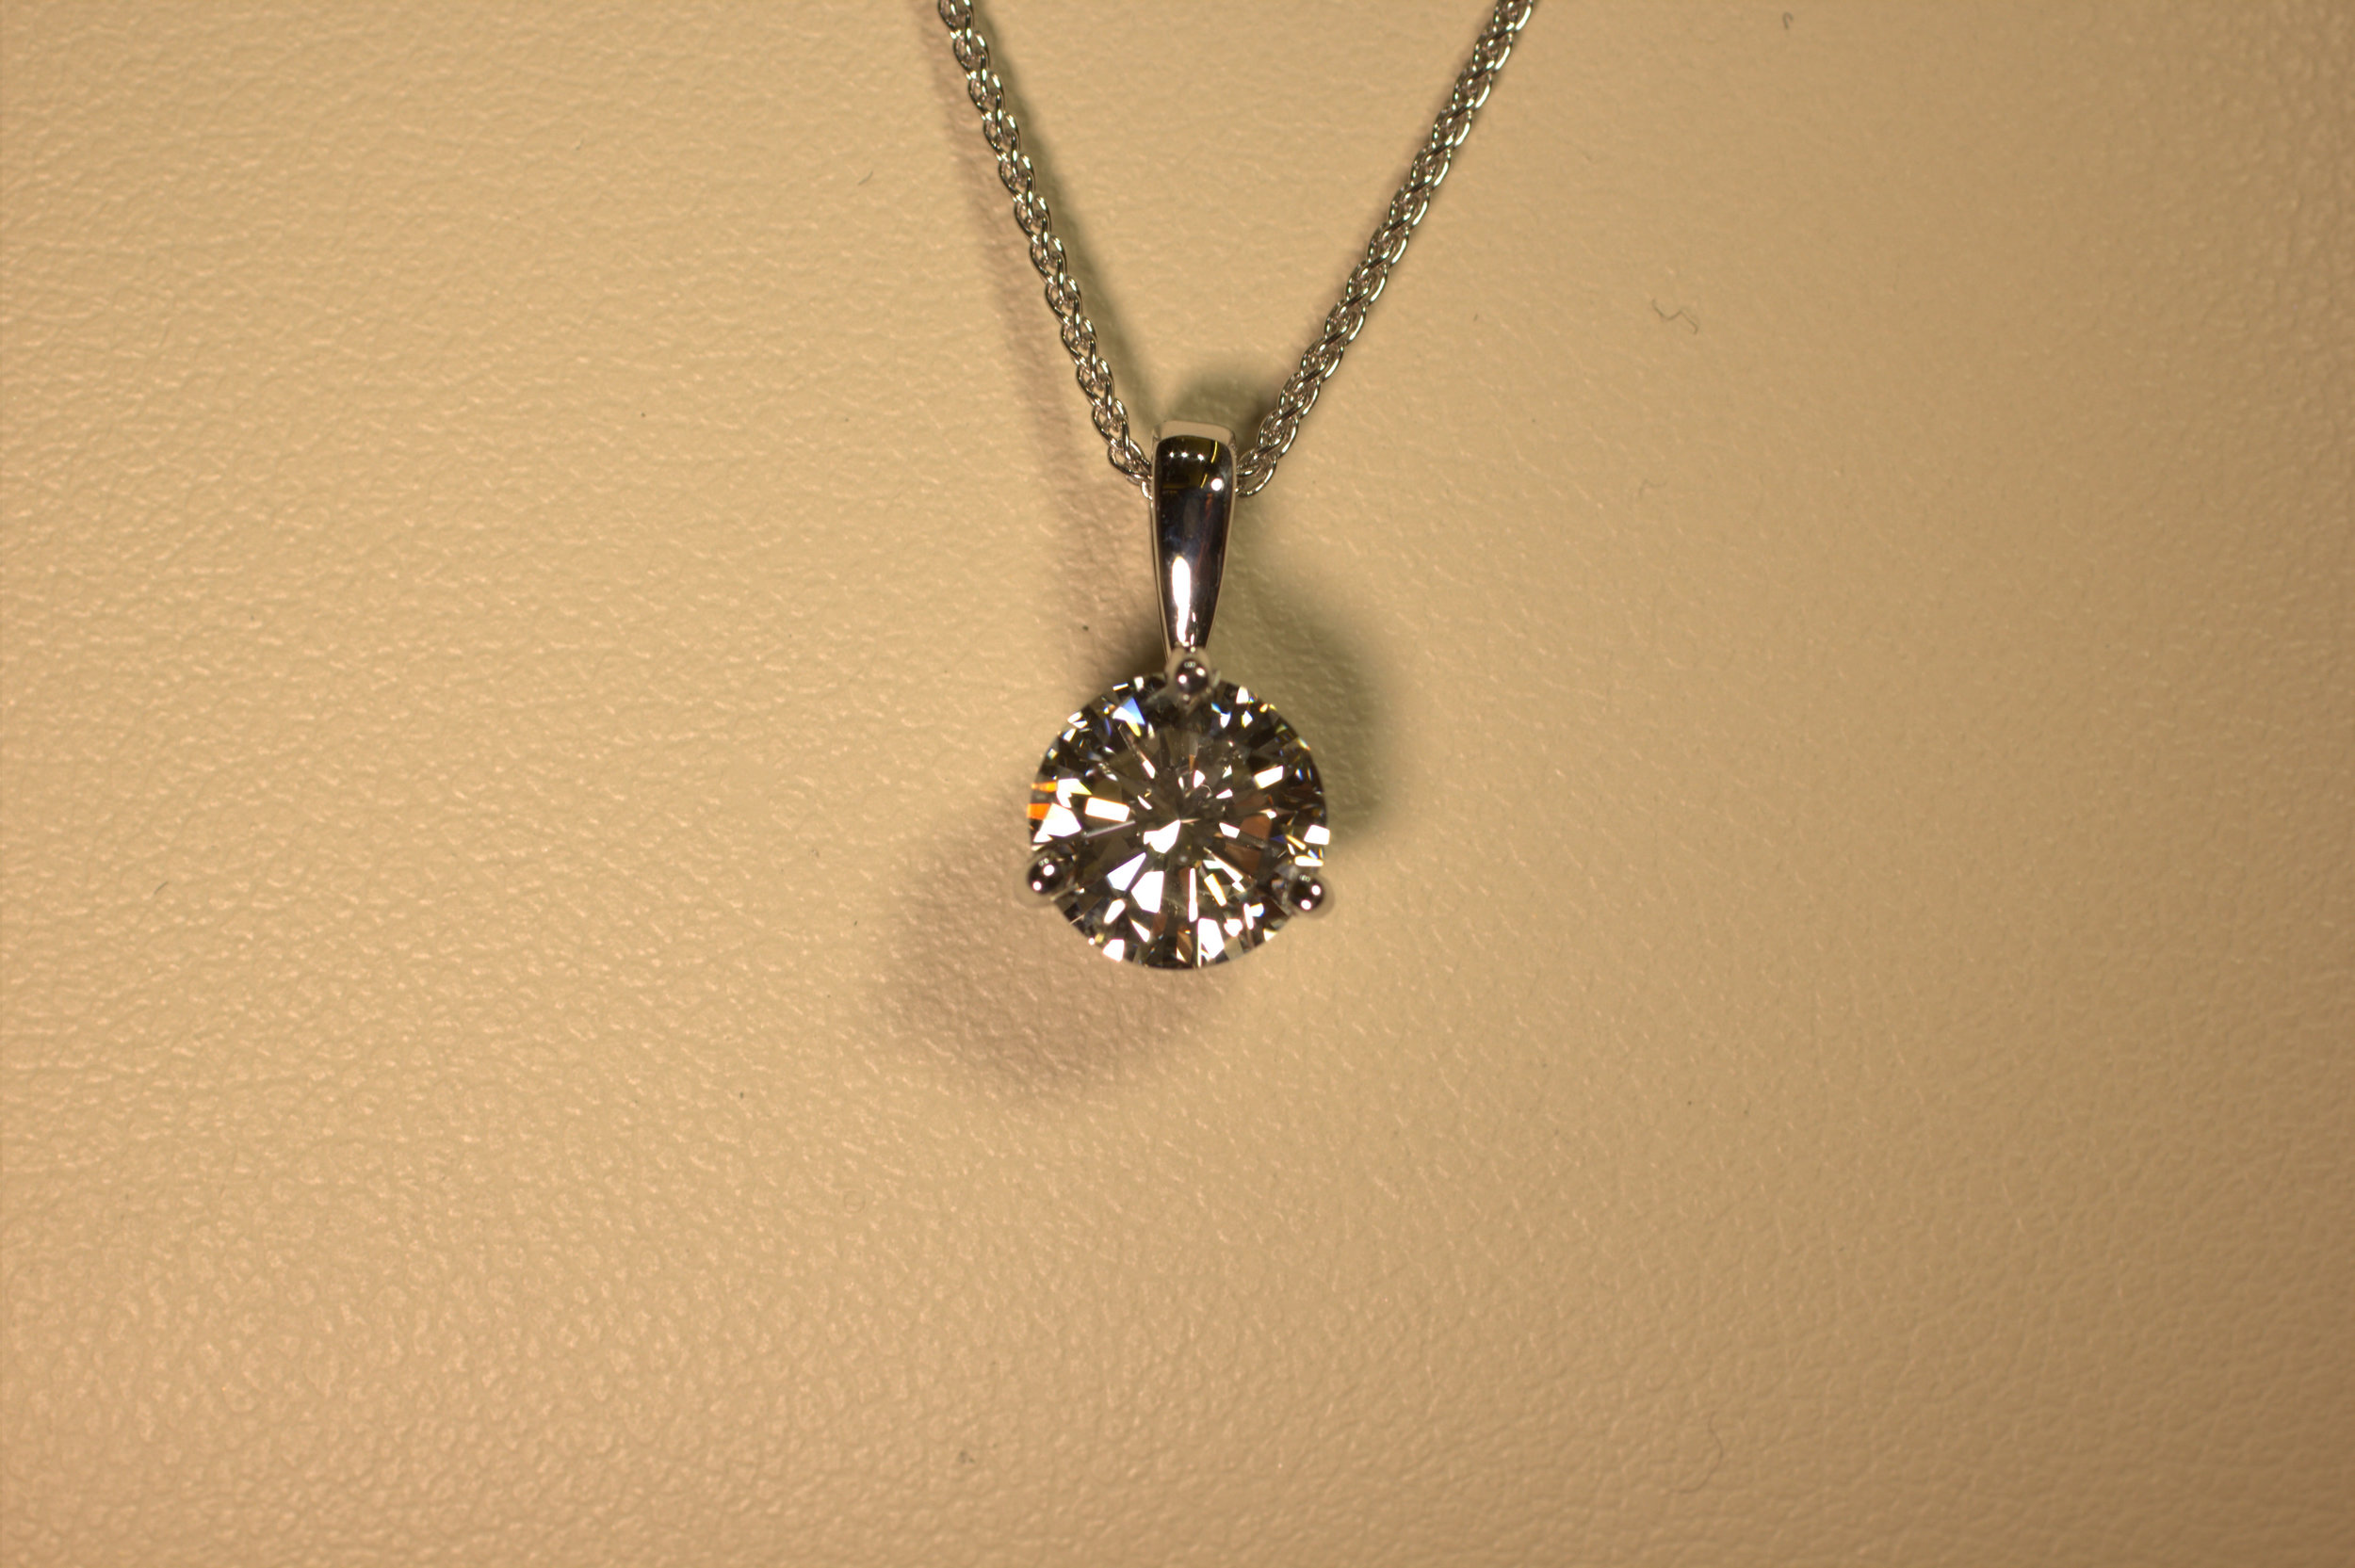 1.02 carat diamond solitaire pendant. This is a perfect gift for any woman. Anyone who doesn't have one wants one. Very versatile can be dressed up or dressed down. This classic gift is a great is perfect.  $7,500